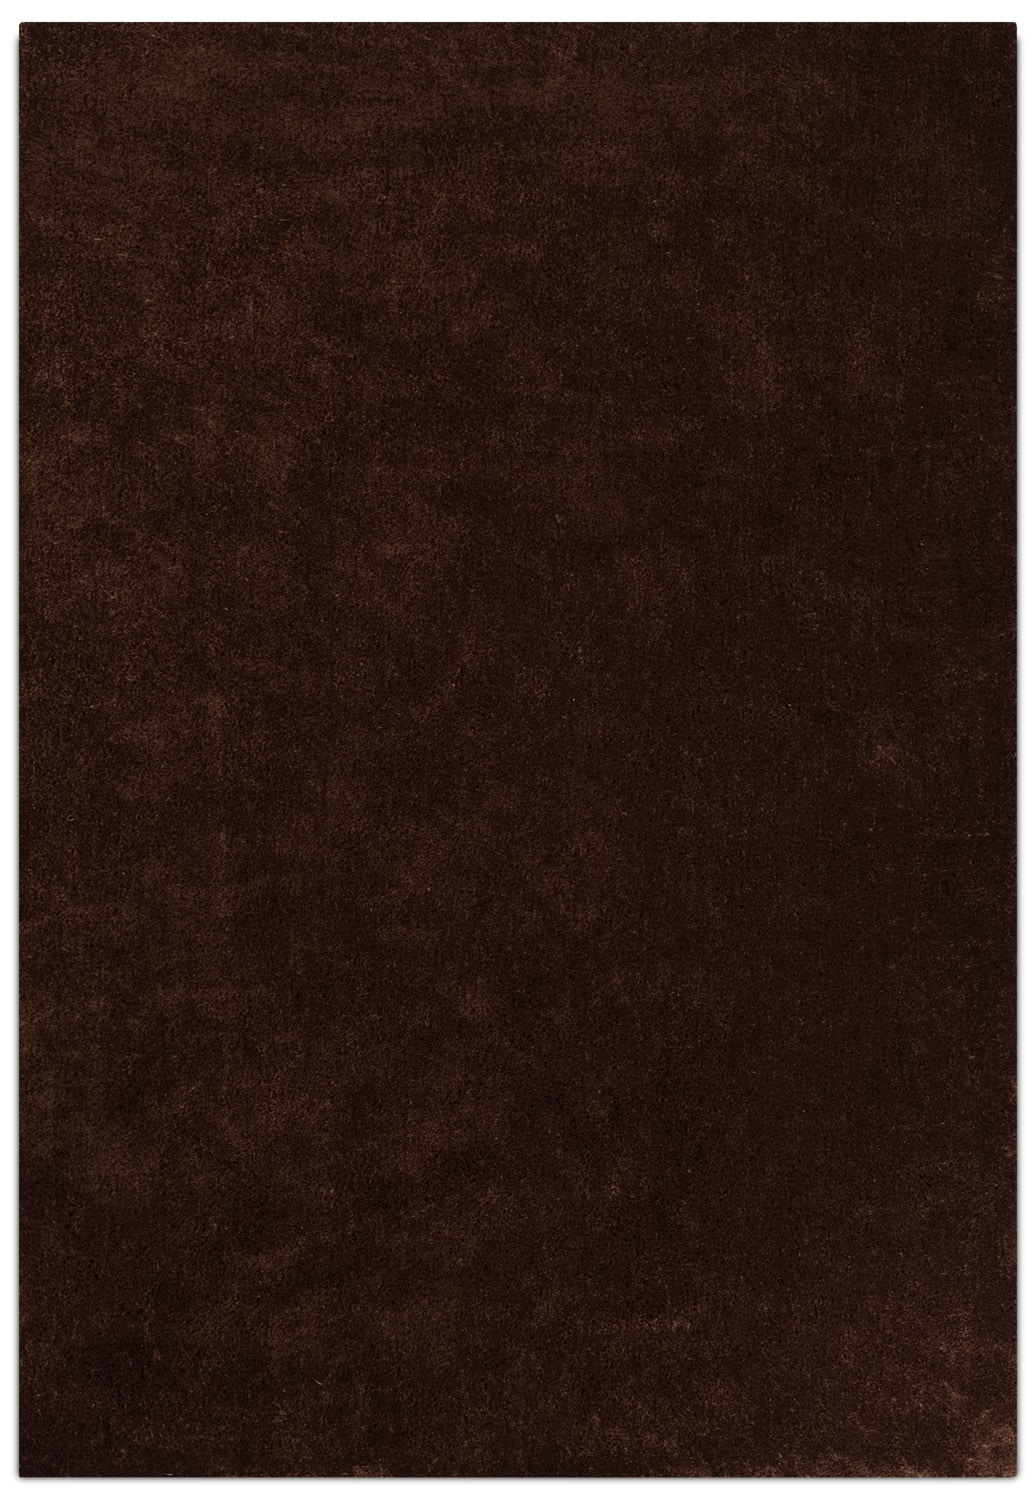 Daisy 5' X 8' Area Rug - Brown